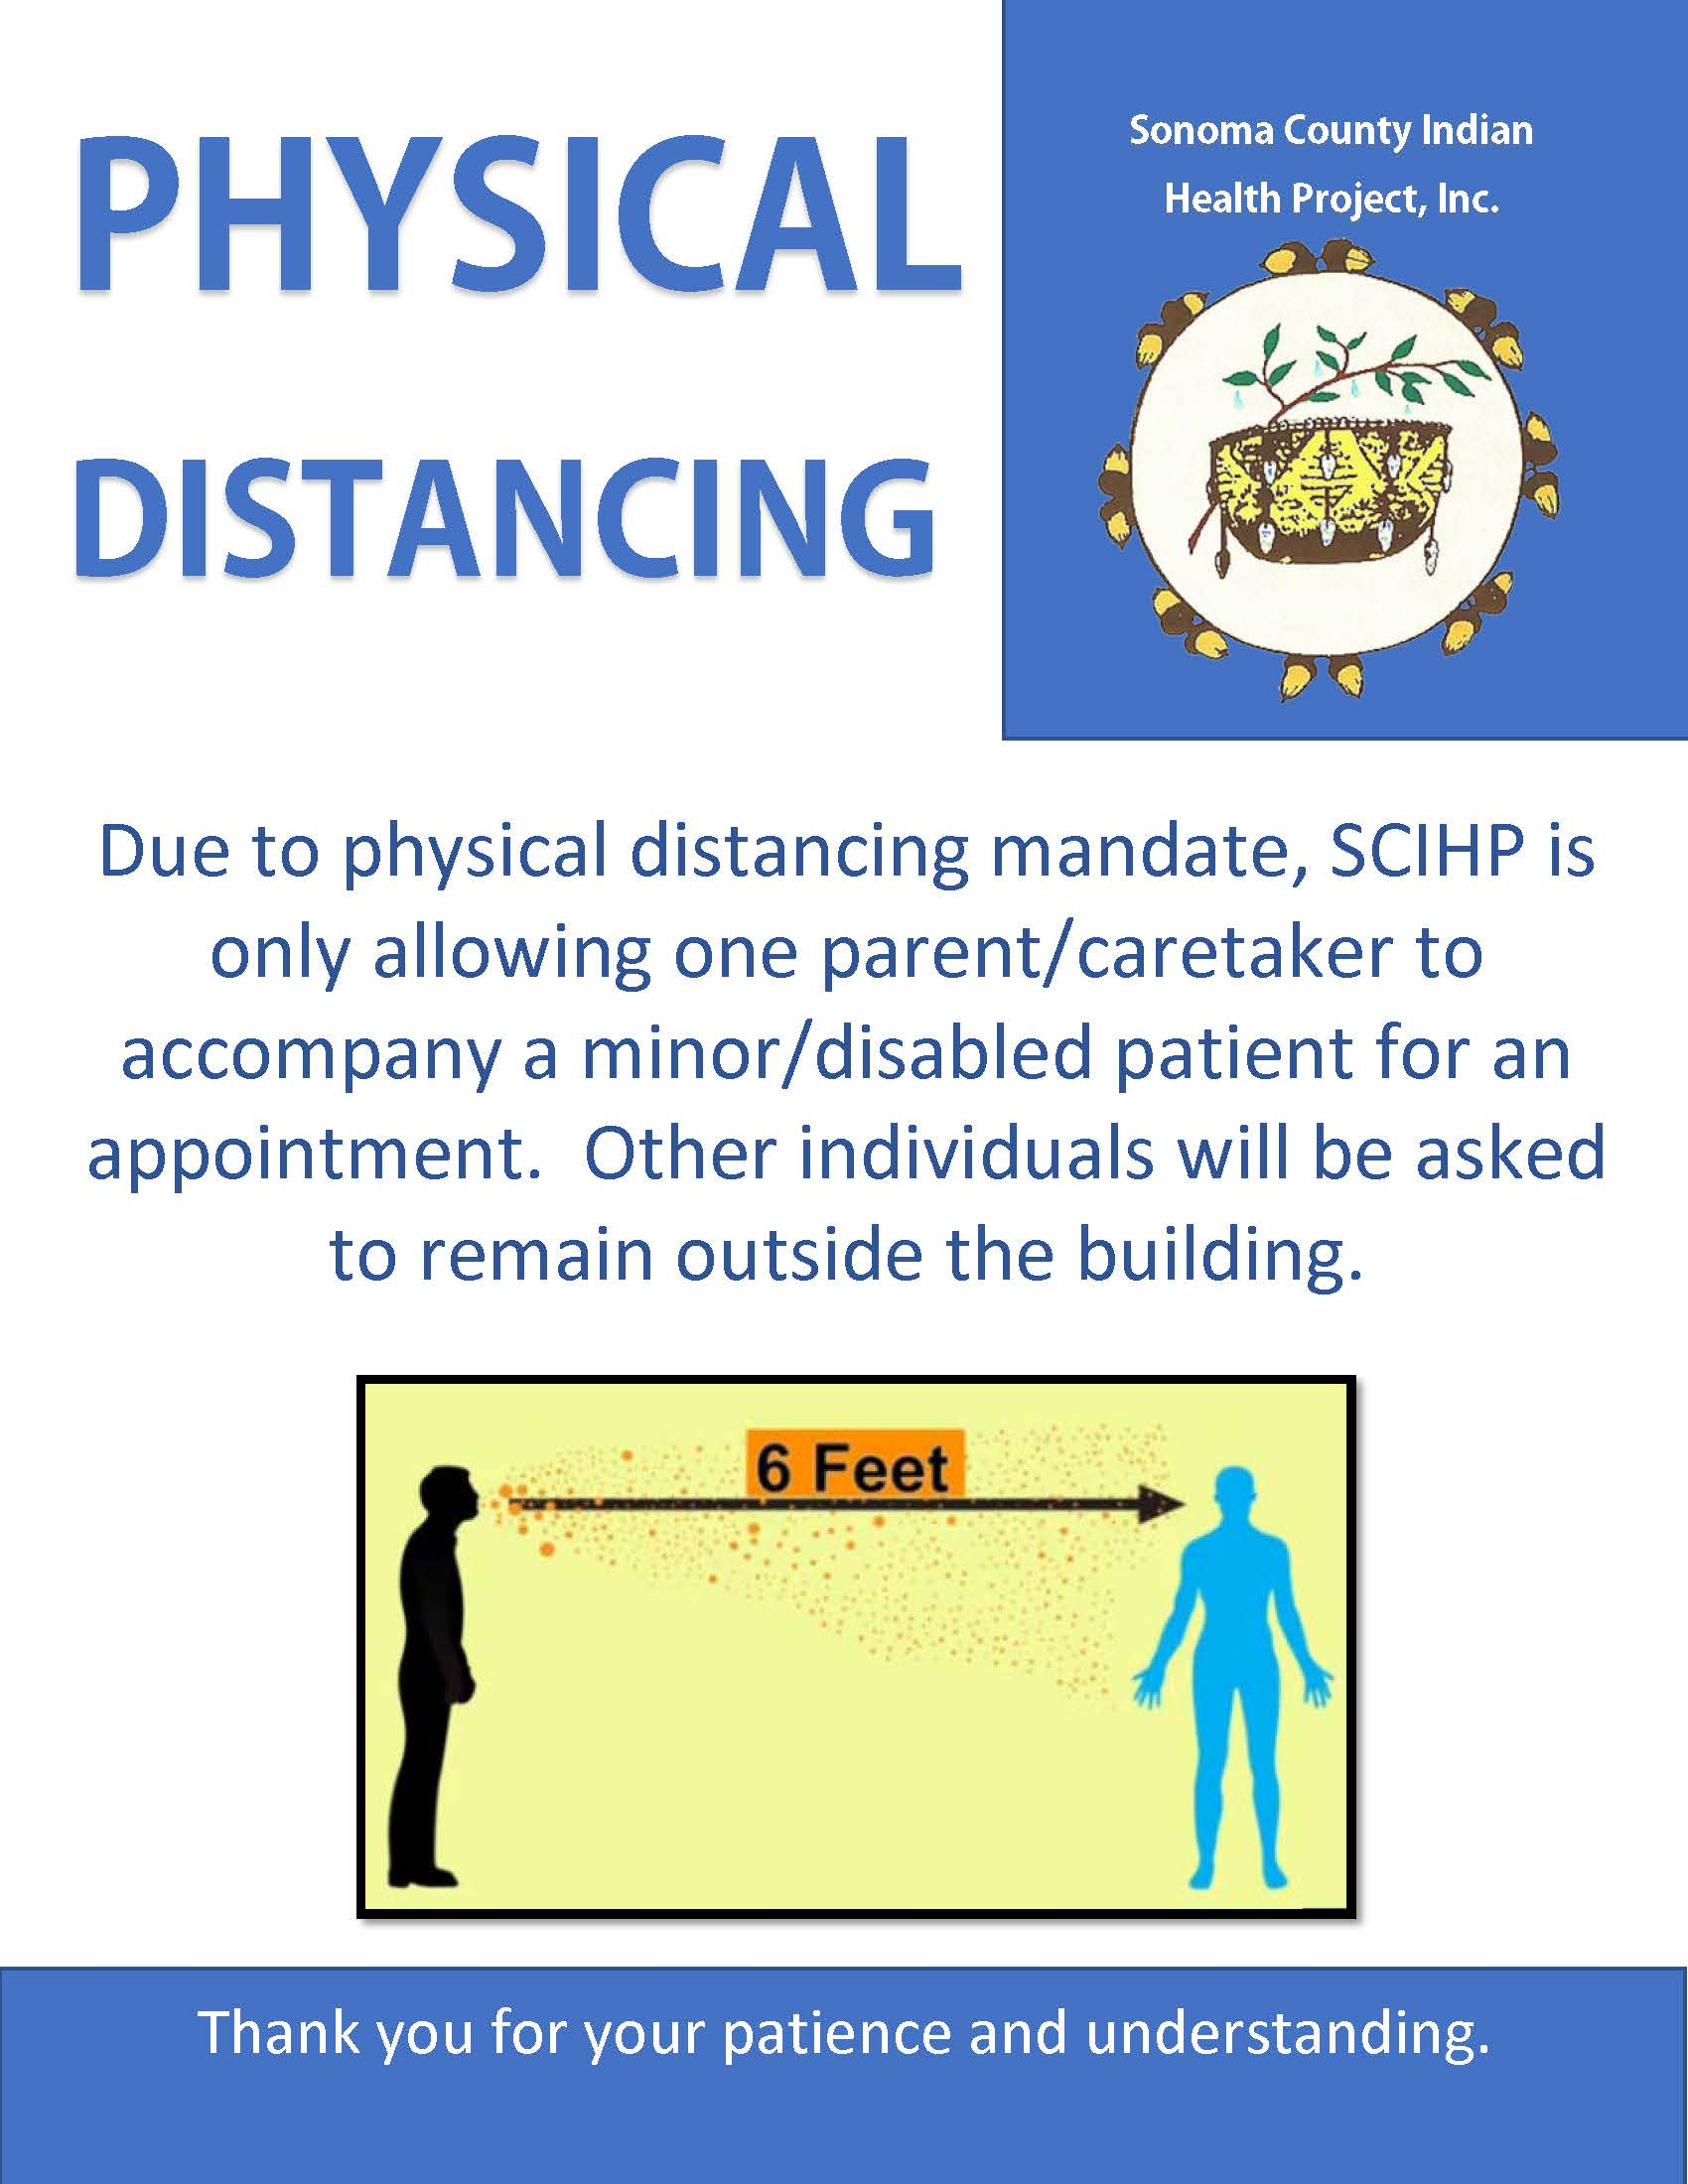 Social Distancing for patients